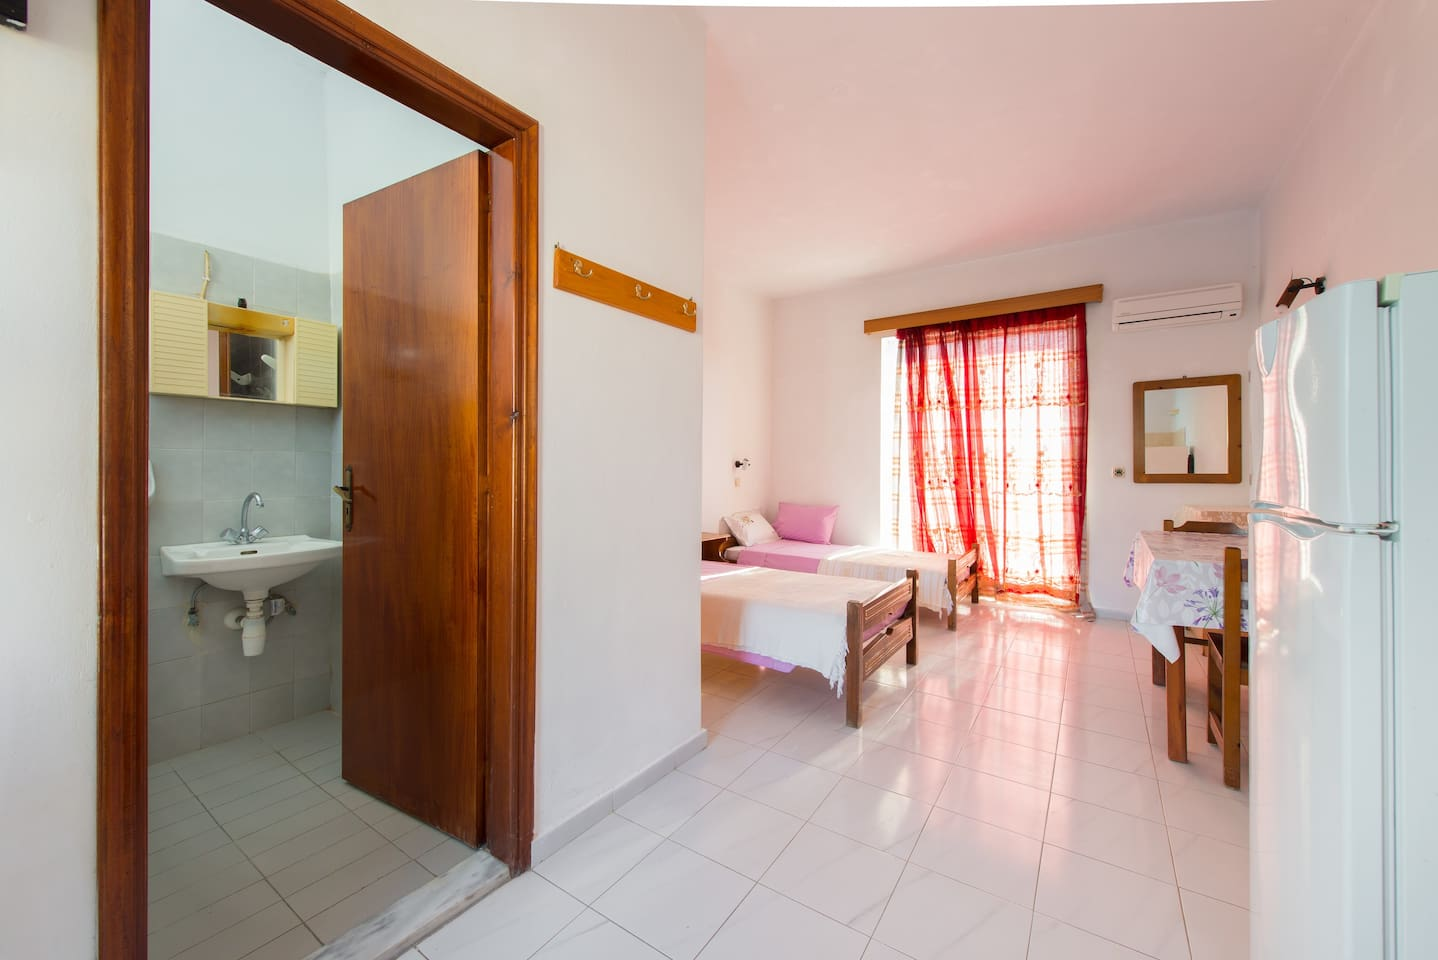 Two single bed airconditioned studio with cooker, kettle, fridge, shower and TV, very close to Kremasti centre and beach